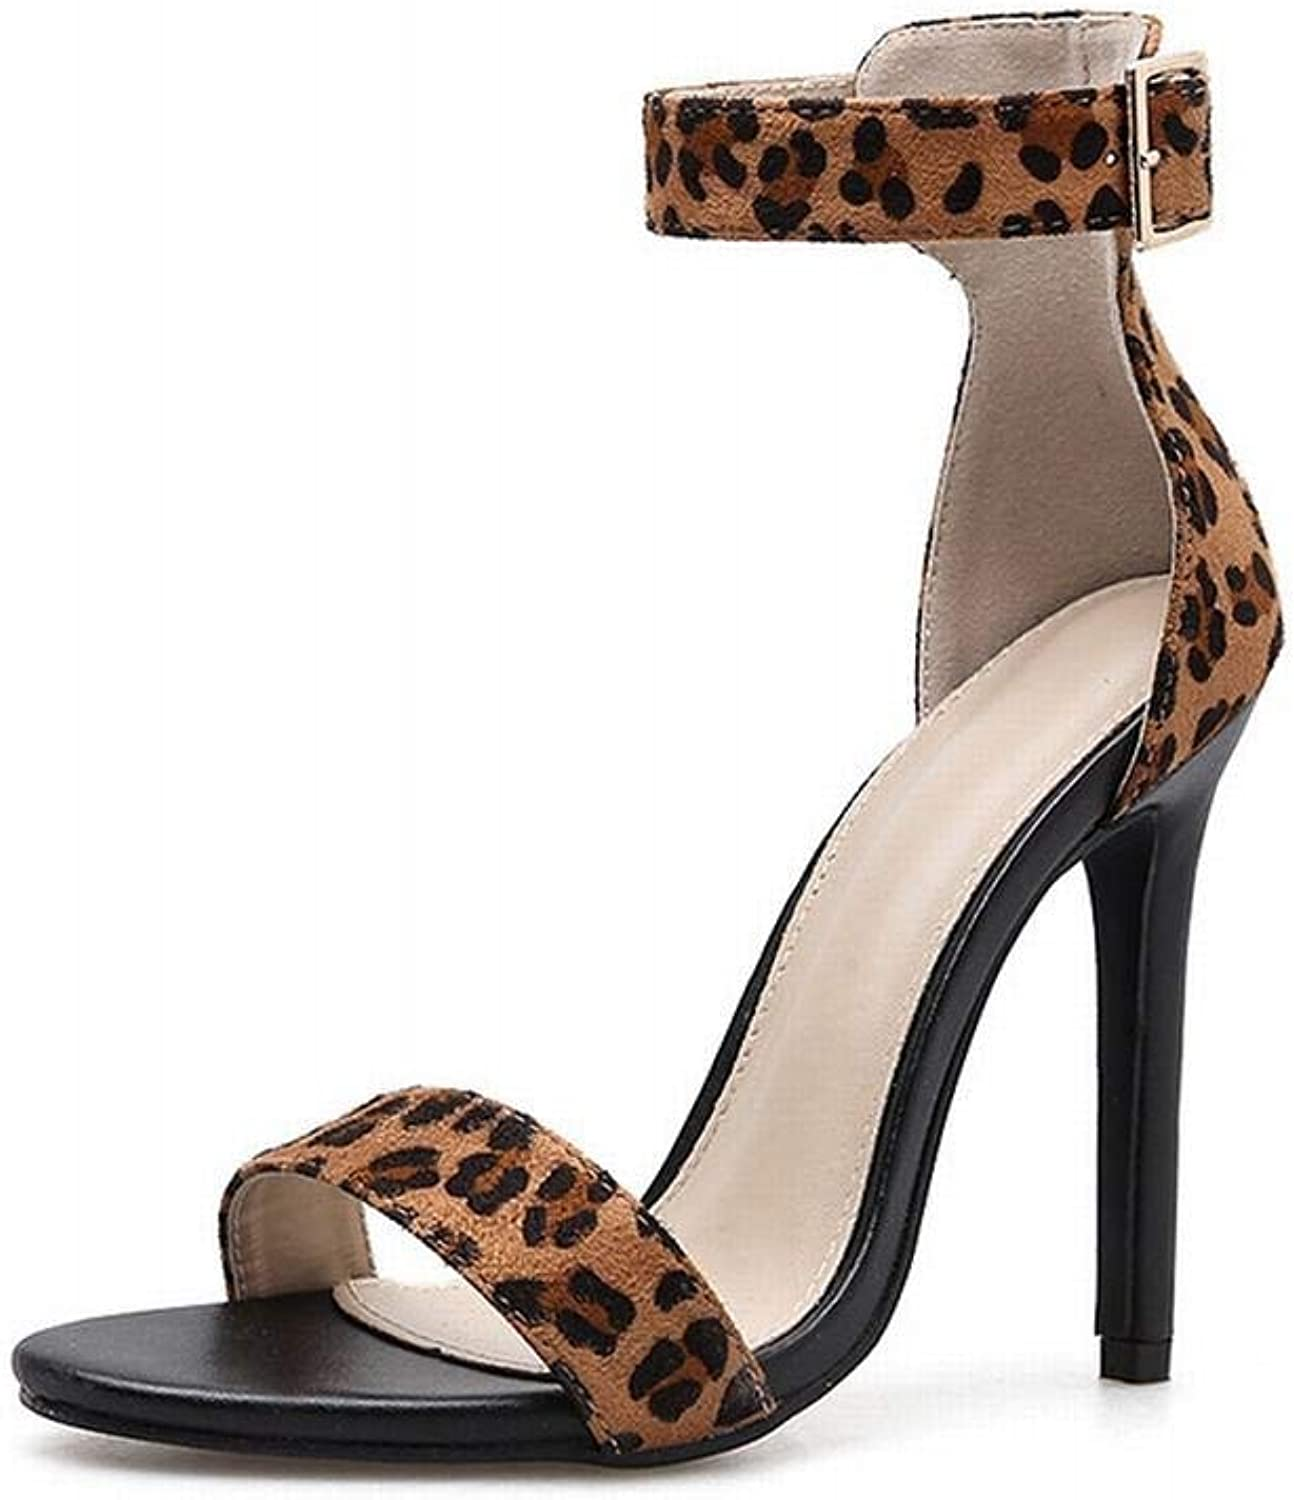 Sugoishop Women's High Heel Leopard Sexy High Heels Sandals Roman shoes